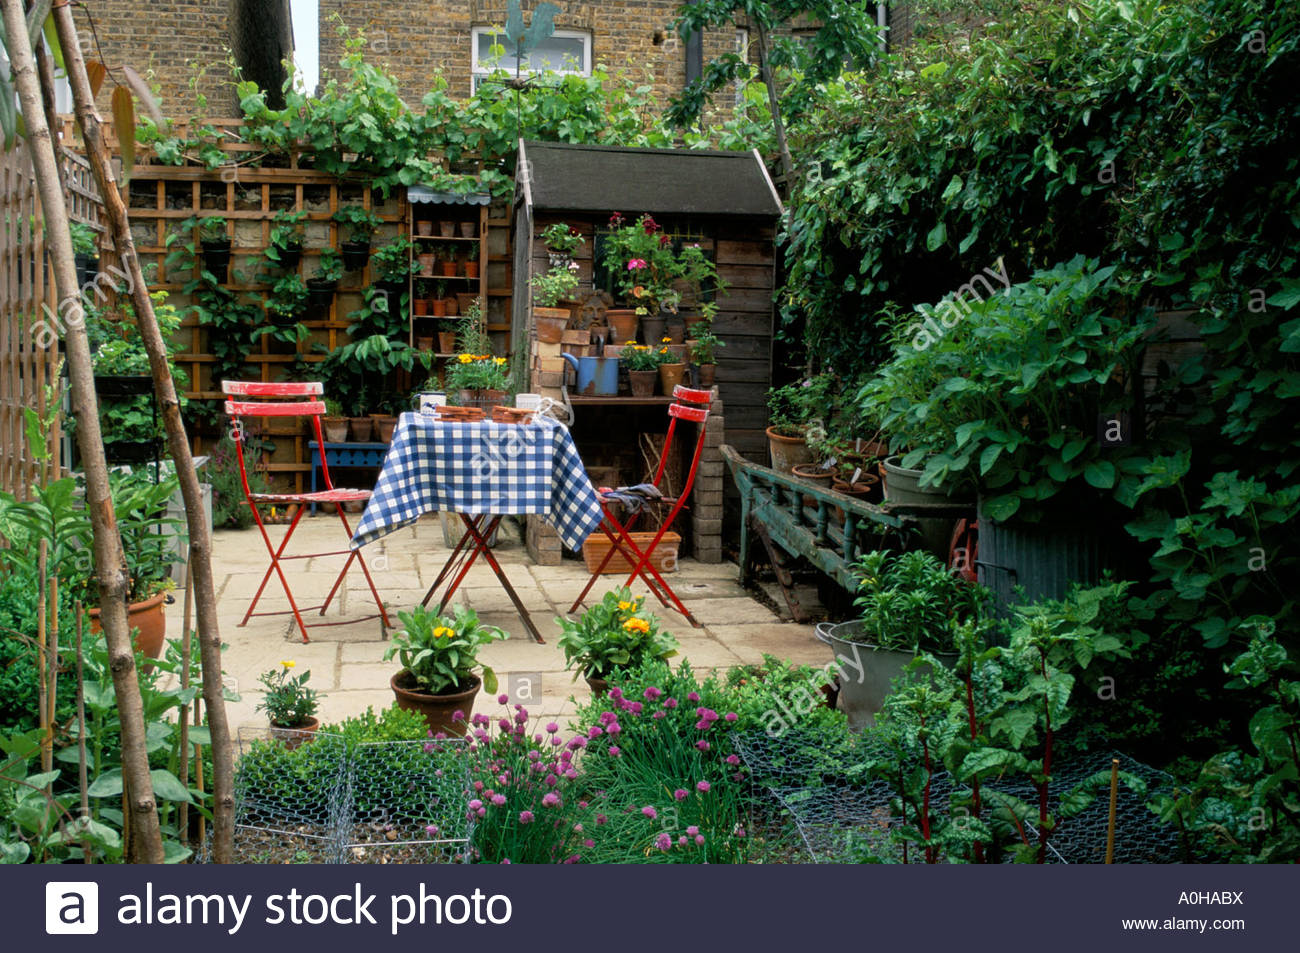 small town garden patio stock image - Patio Town